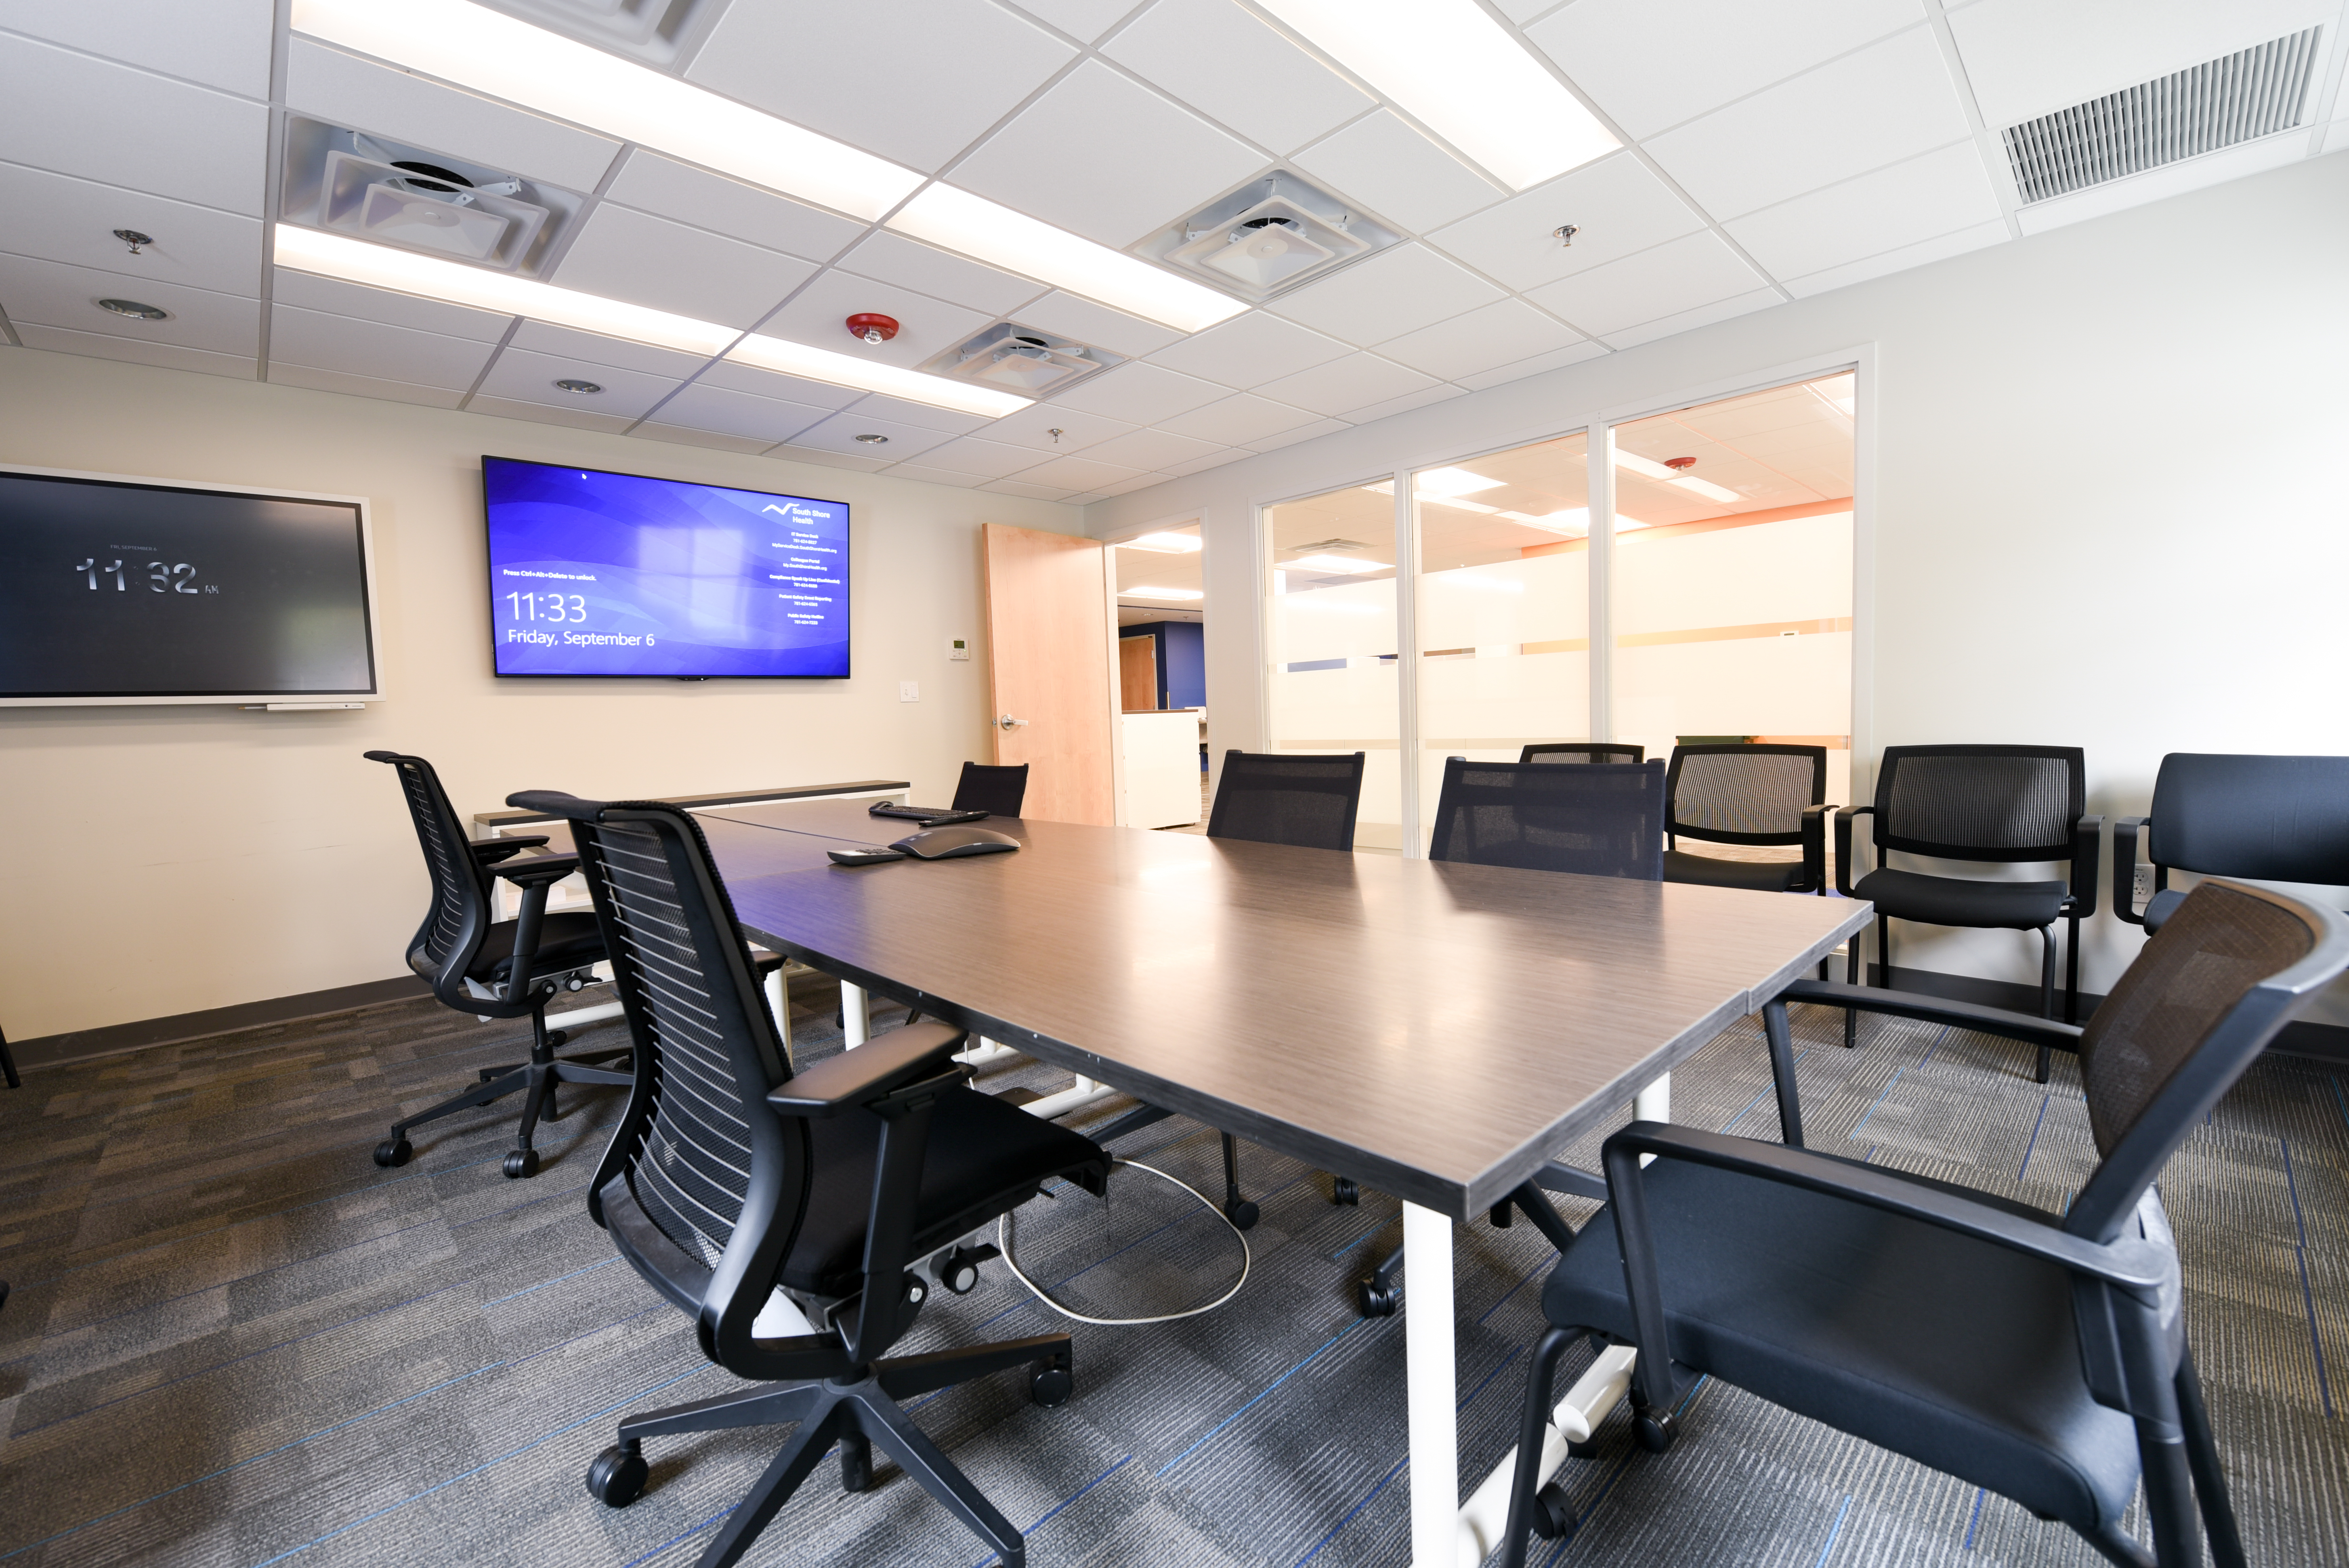 SSH-549 Conference Room